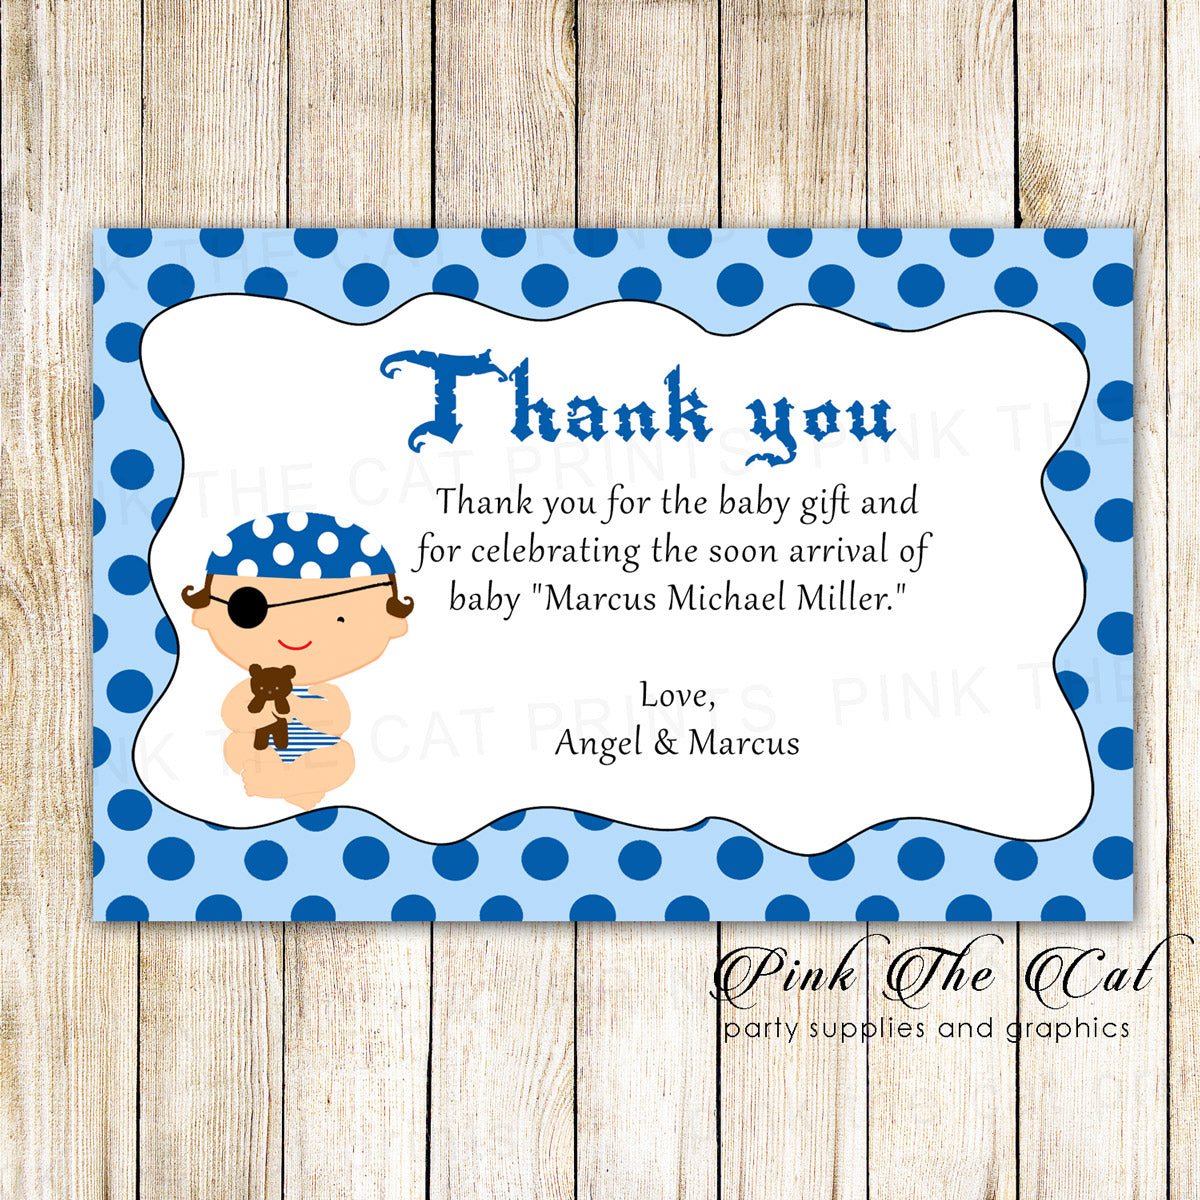 30 Thank You Cards Pirate Baby Shower Birthday Blue Pink The Cat